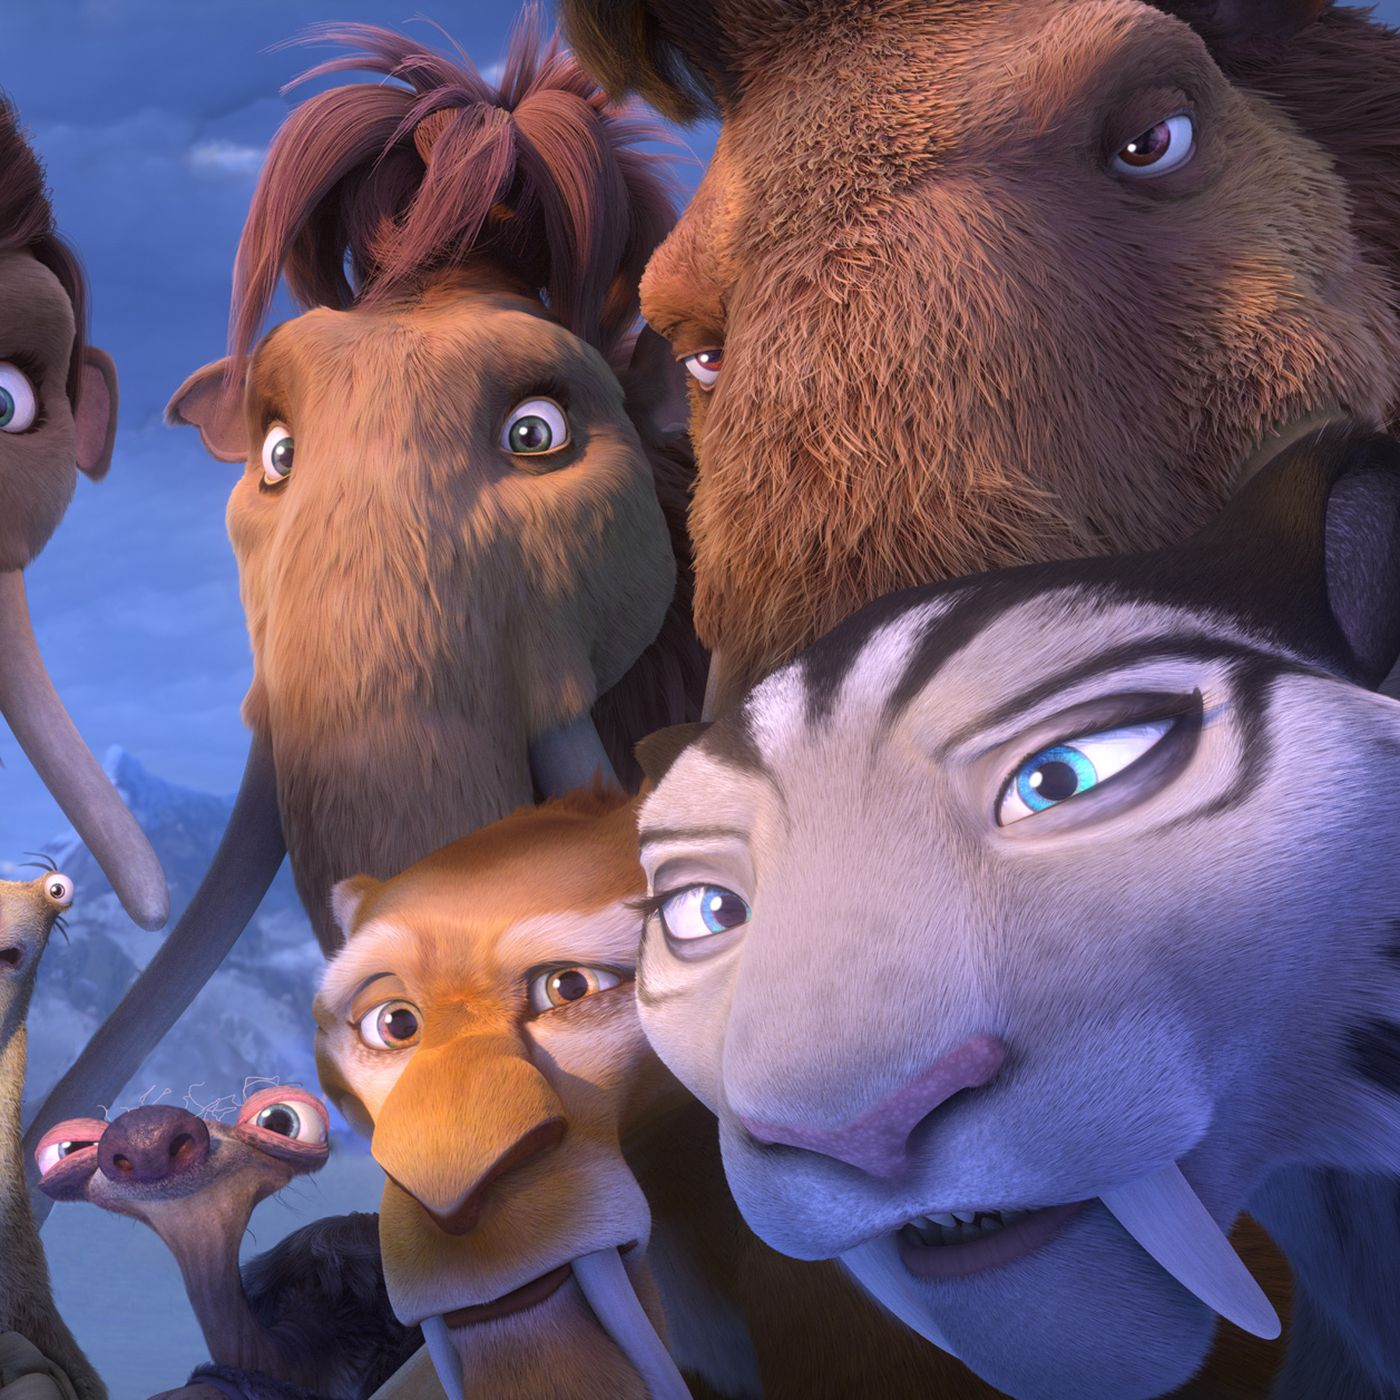 ice age: collision course: why do they keep making these movies? and